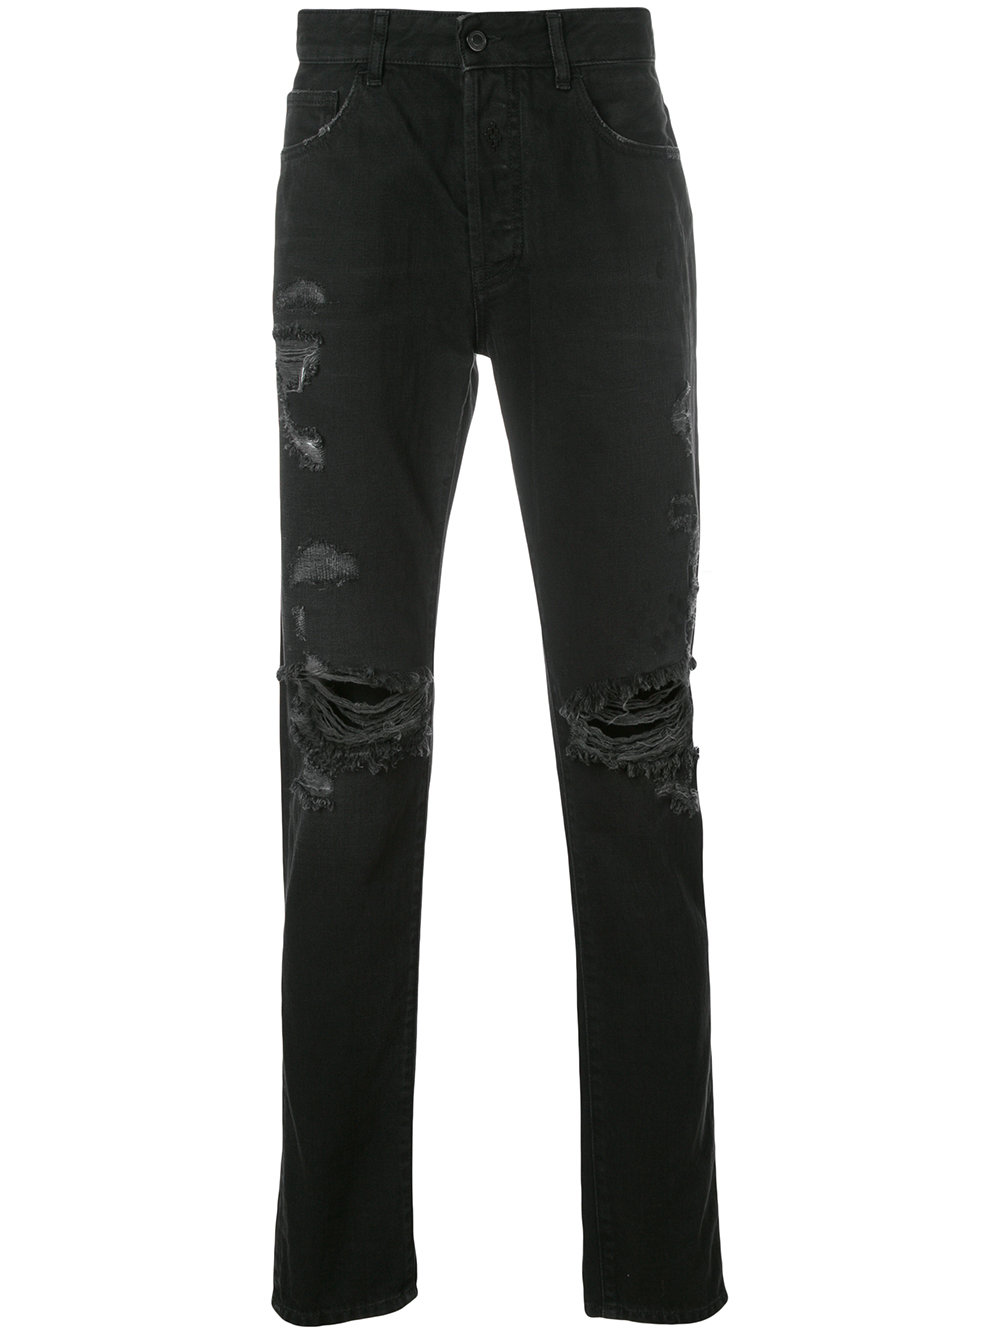 Marcelo Burlon Man BLACK WING SLIM FIT JEANS STRONG WASH BL